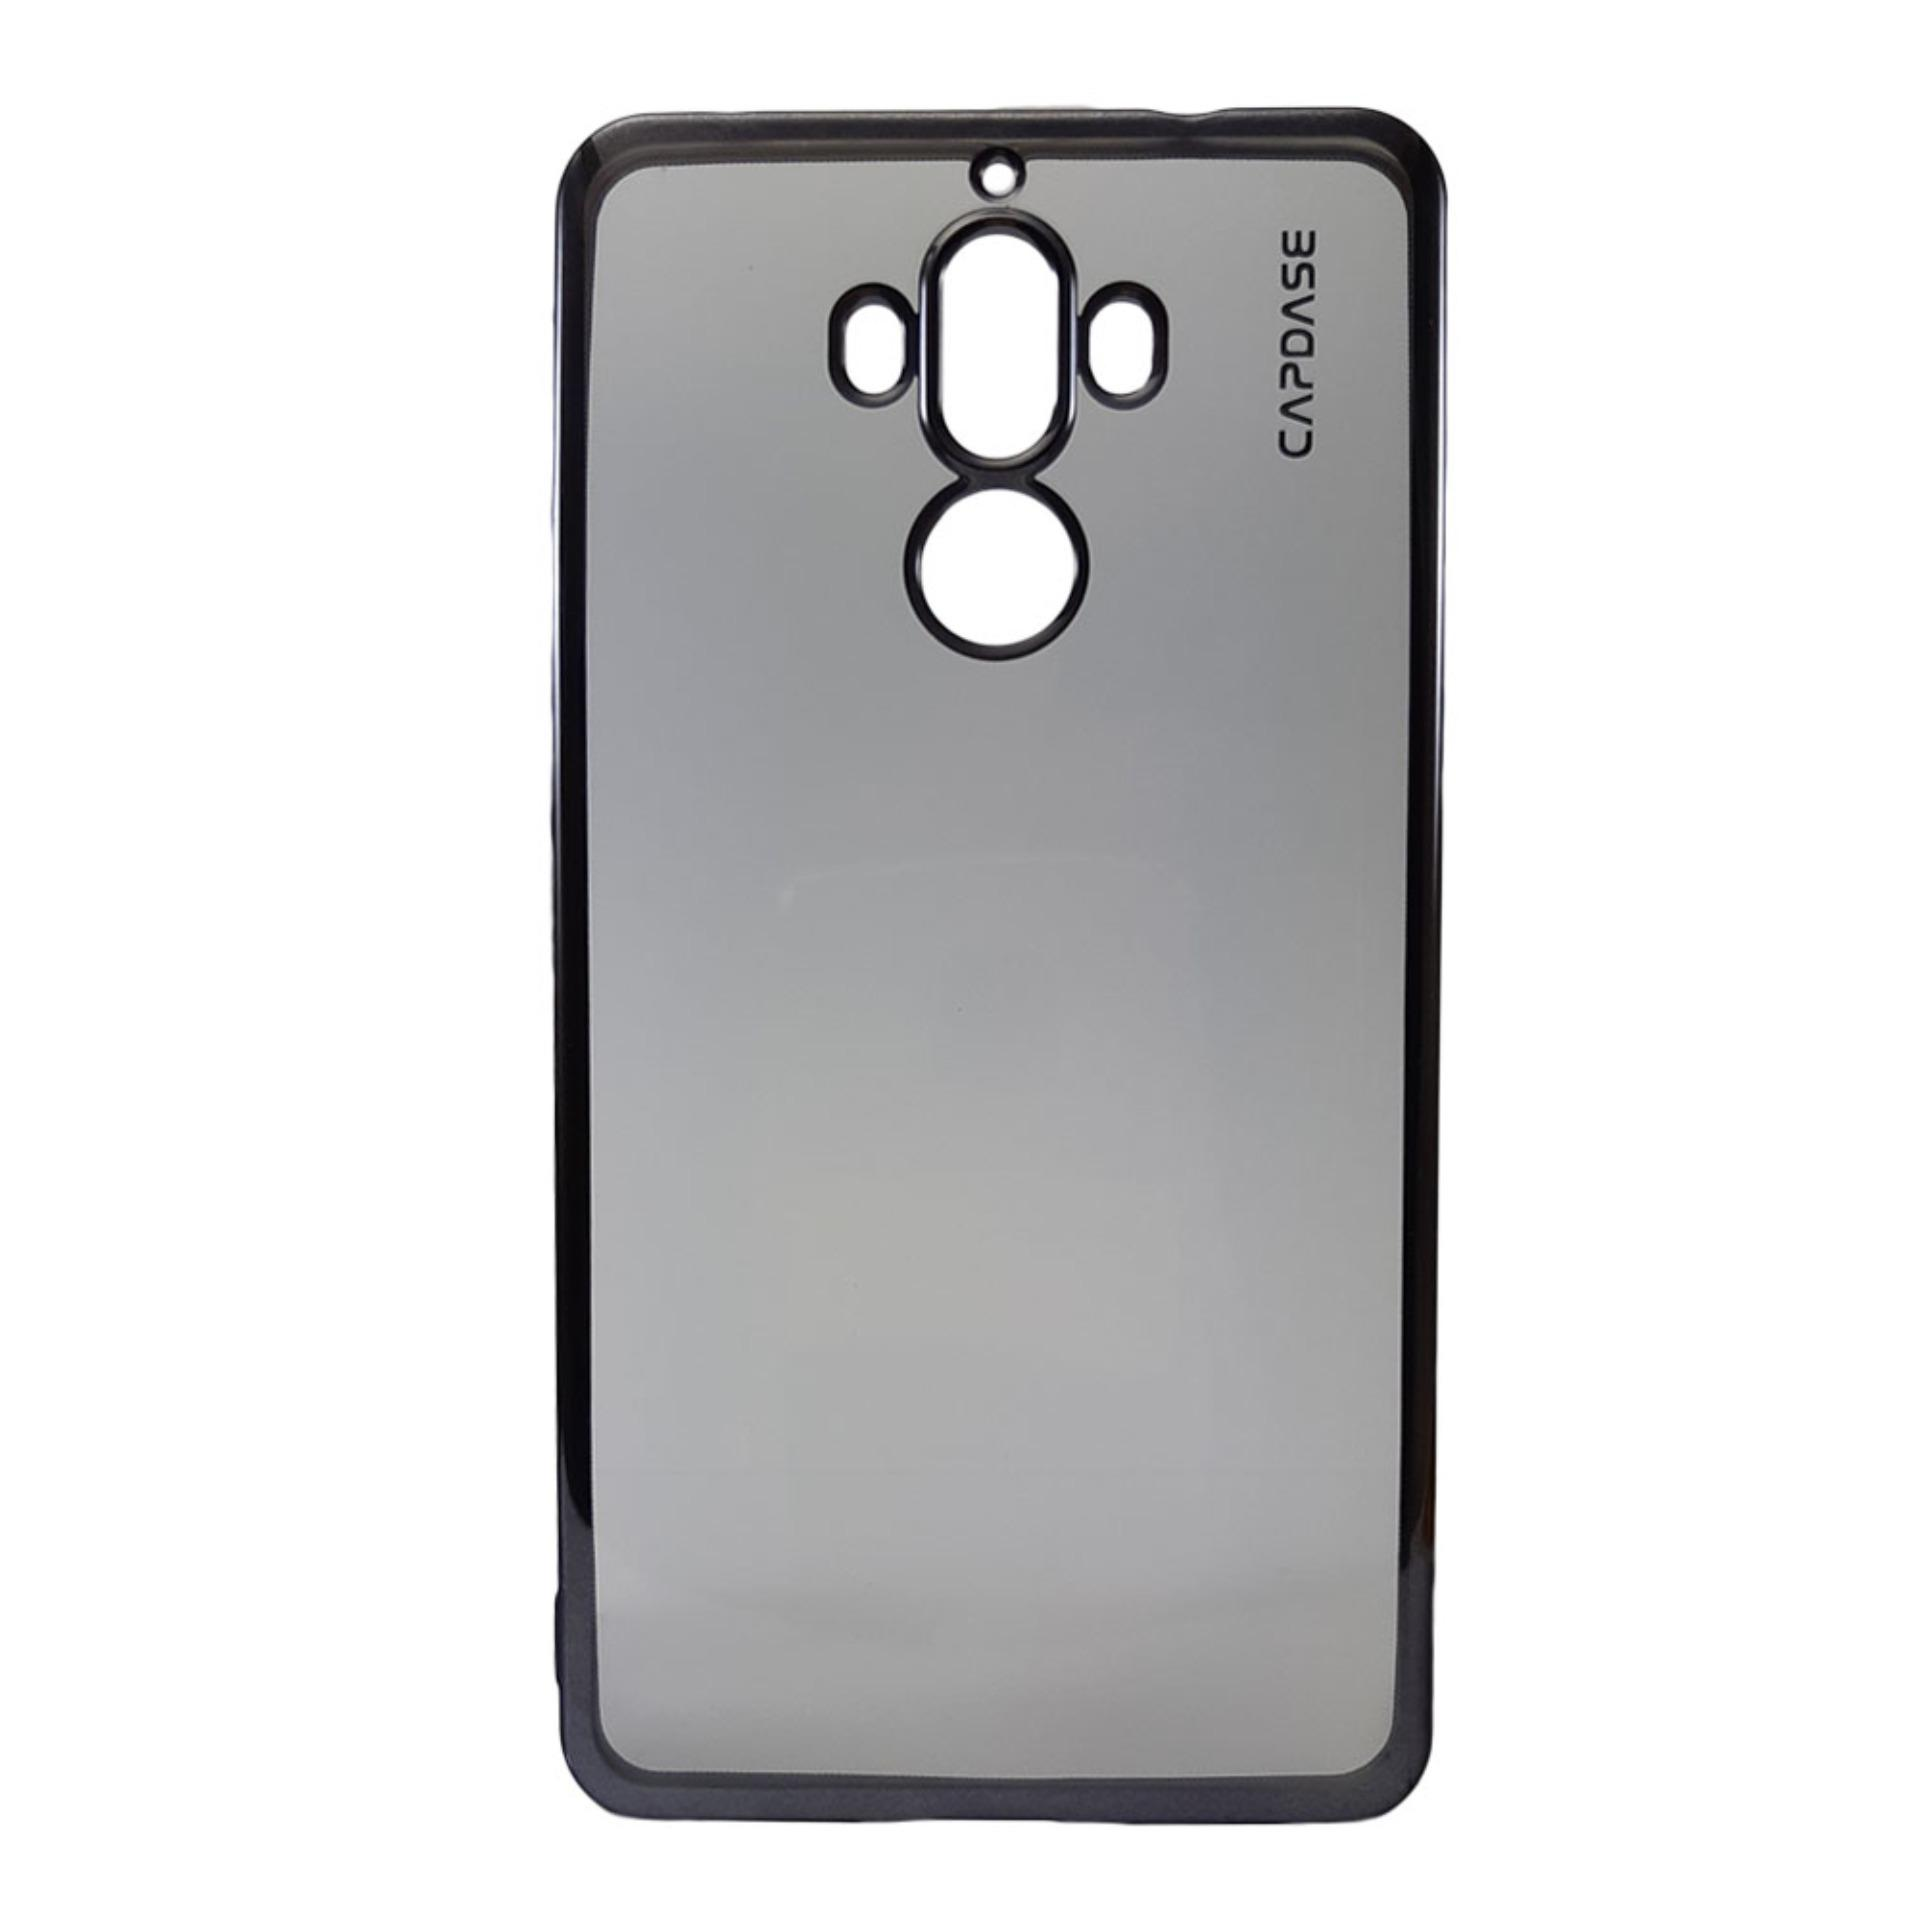 Capdase Verge Soft Jacket for Huawei Mate 9 (Clear Titanium Black)